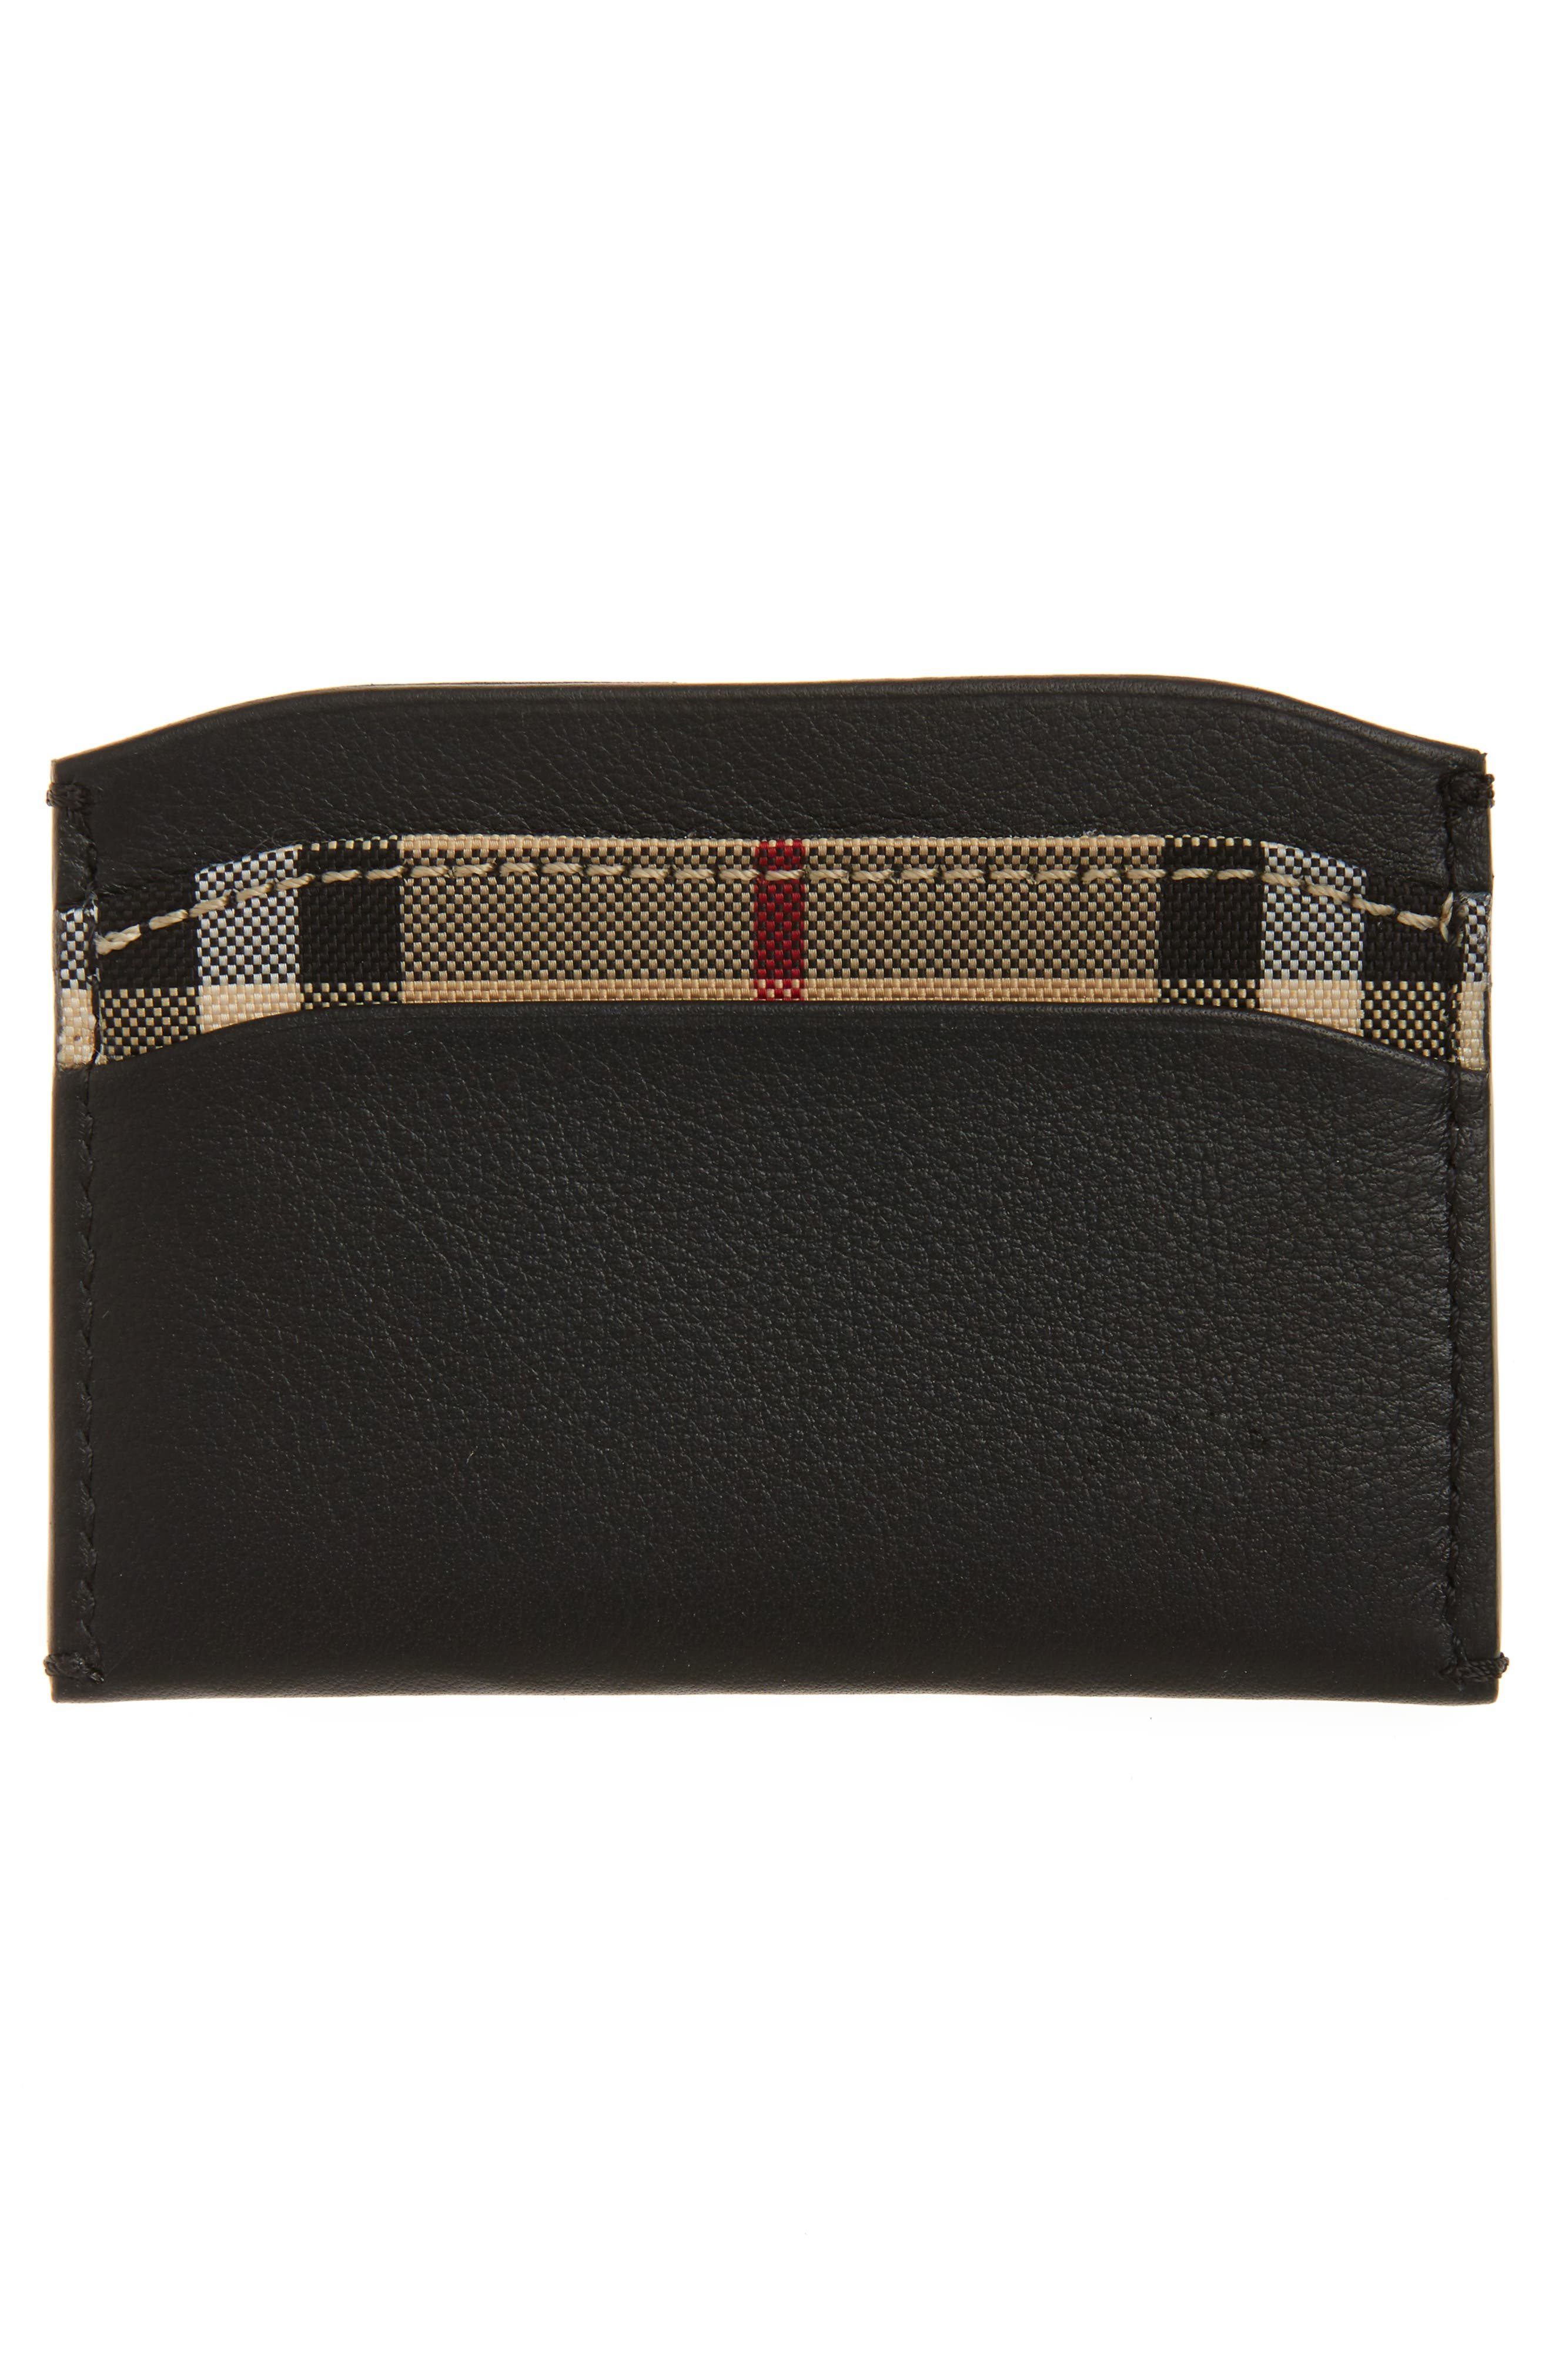 Izzy Check & Leather Card Case,                             Alternate thumbnail 2, color,                             001